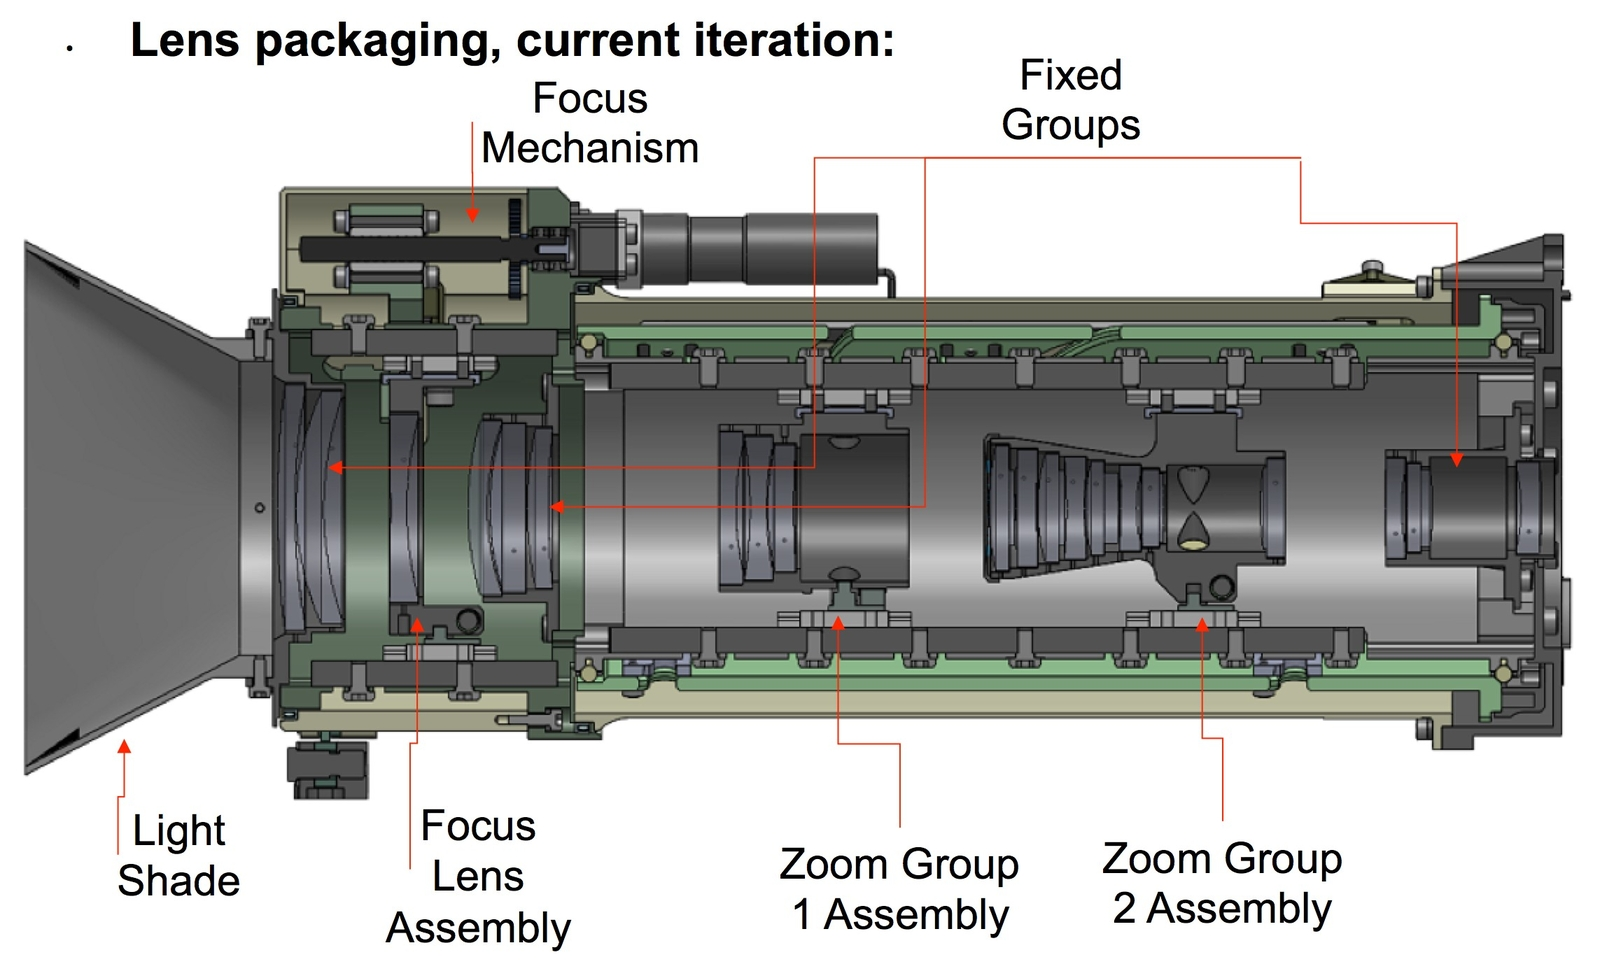 This diagram illustrates the current iteration (July 2015) of the lens packaging for the Mars 2020 Rover's instrument, Mastcam-Z.